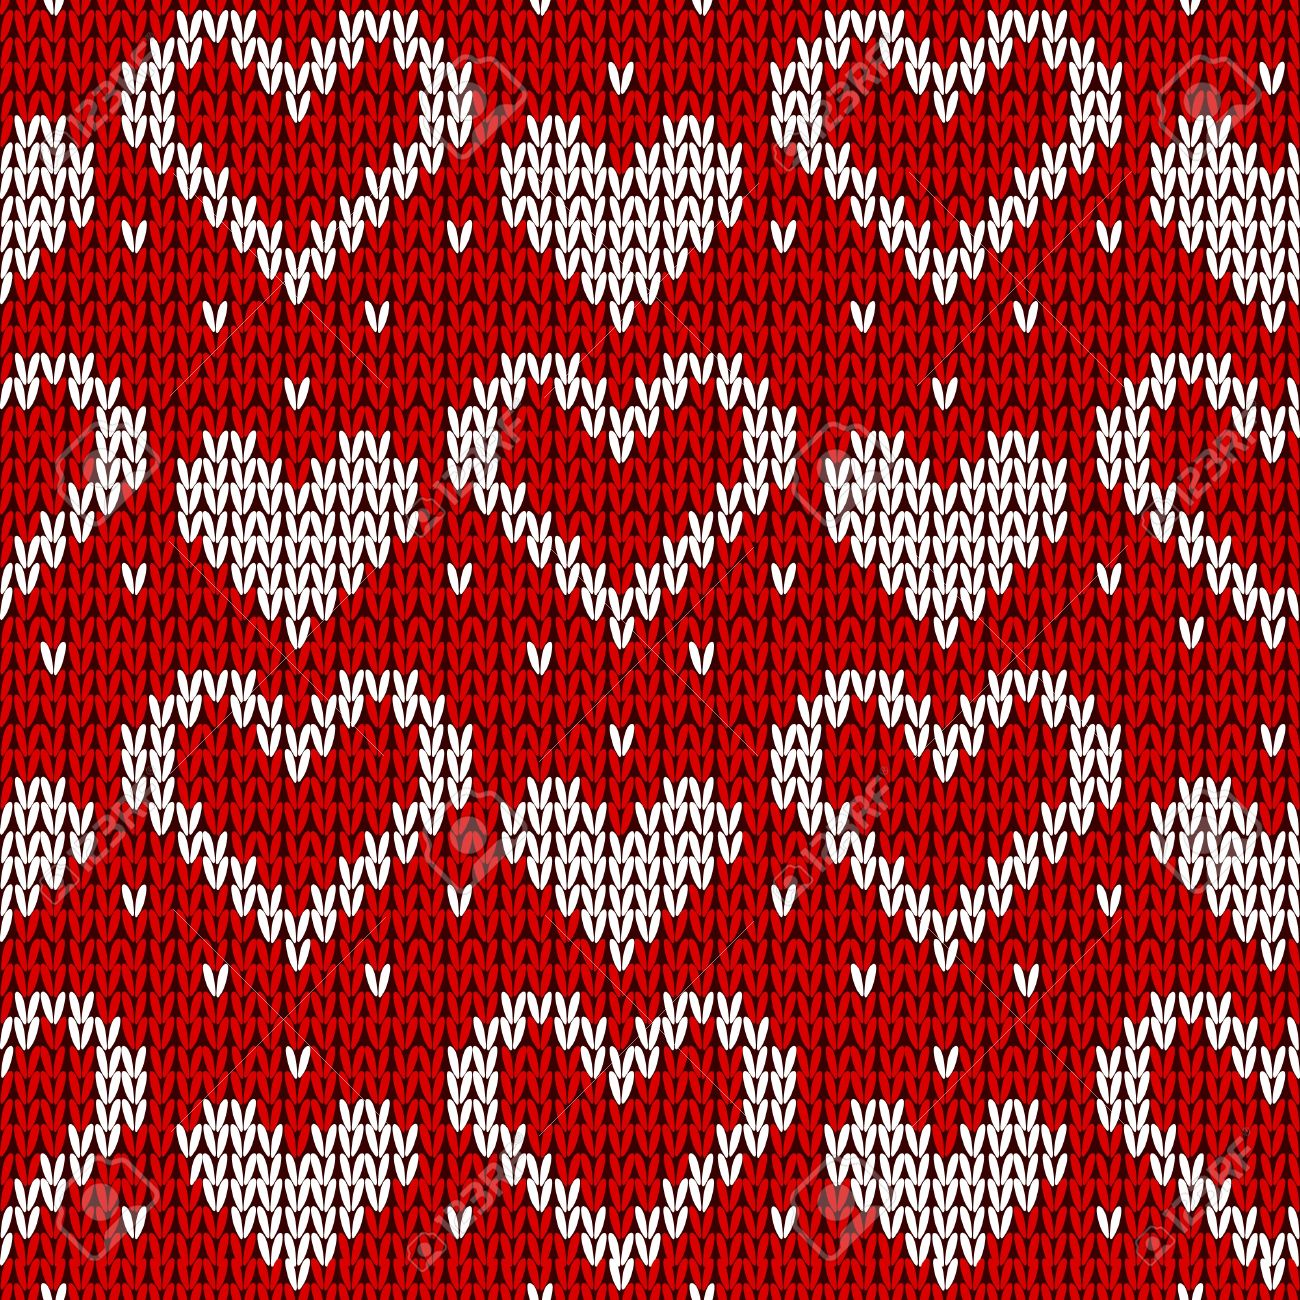 Red knitted background with hearts. Vector illustration. Standard-Bild - 11487586